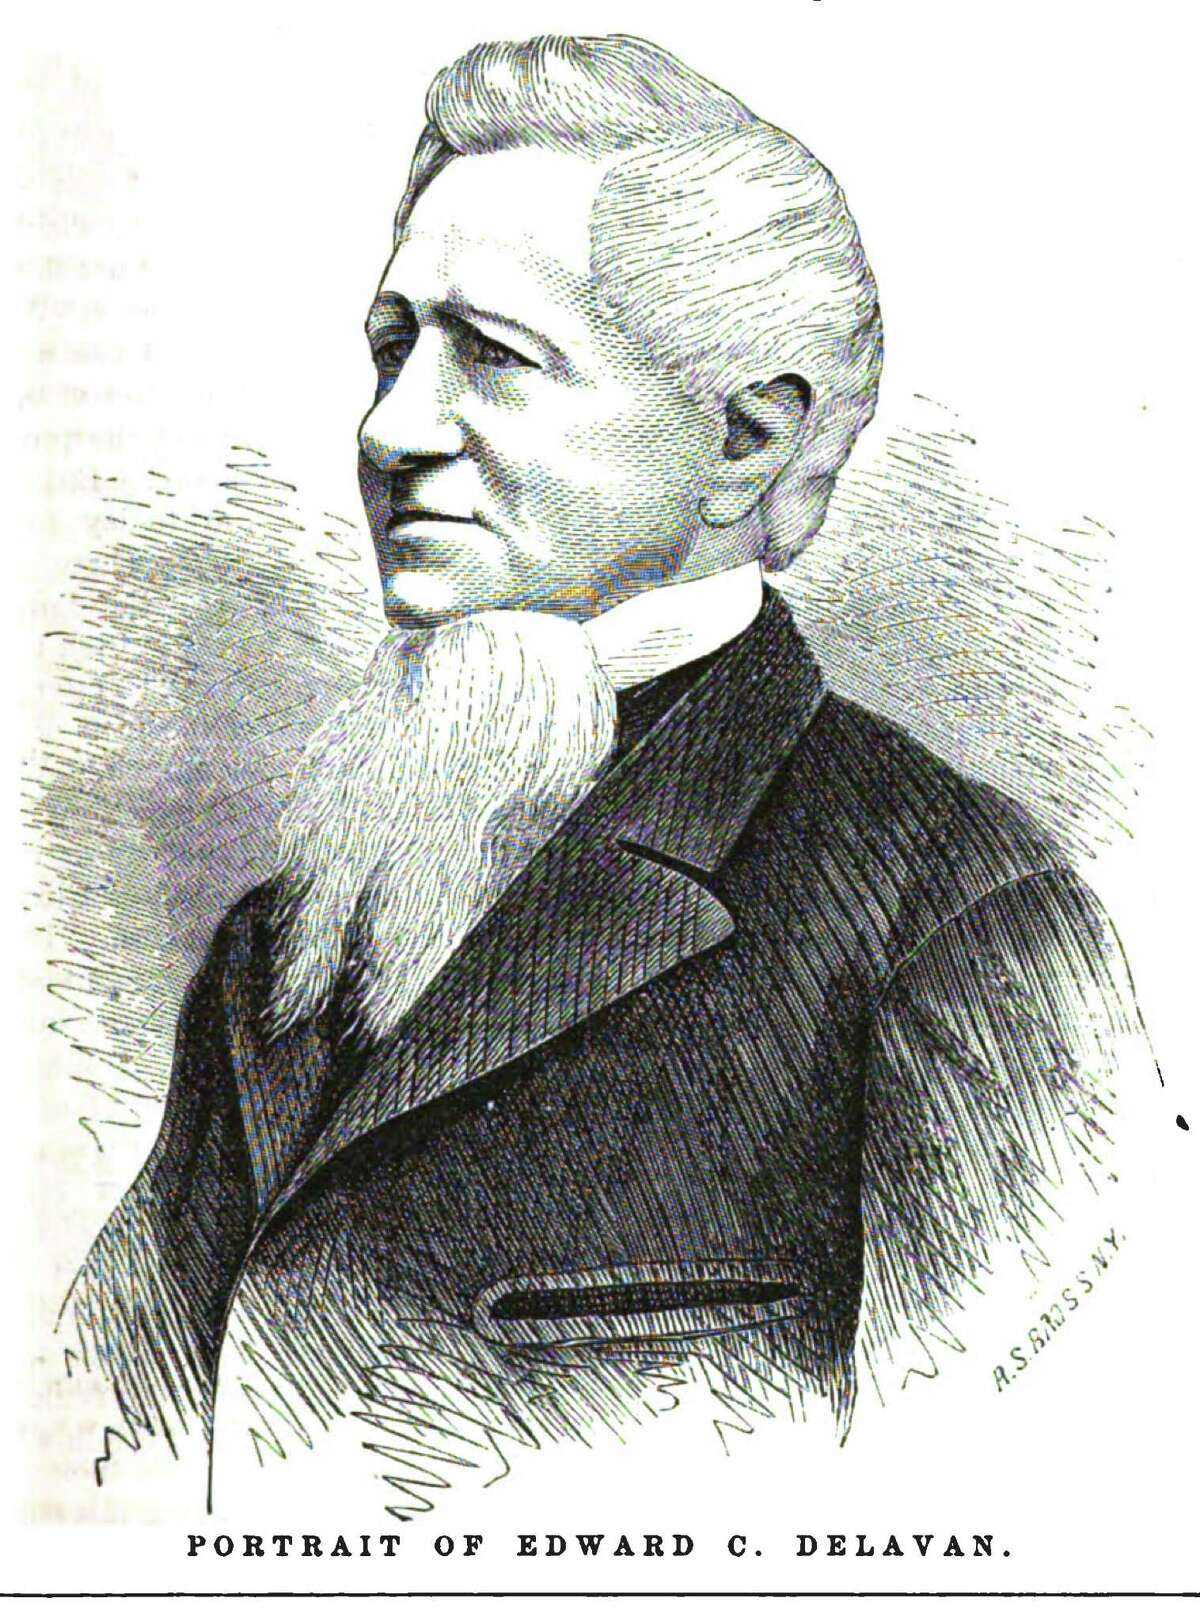 An illustration of Edward C. Delavan that accompaned the article